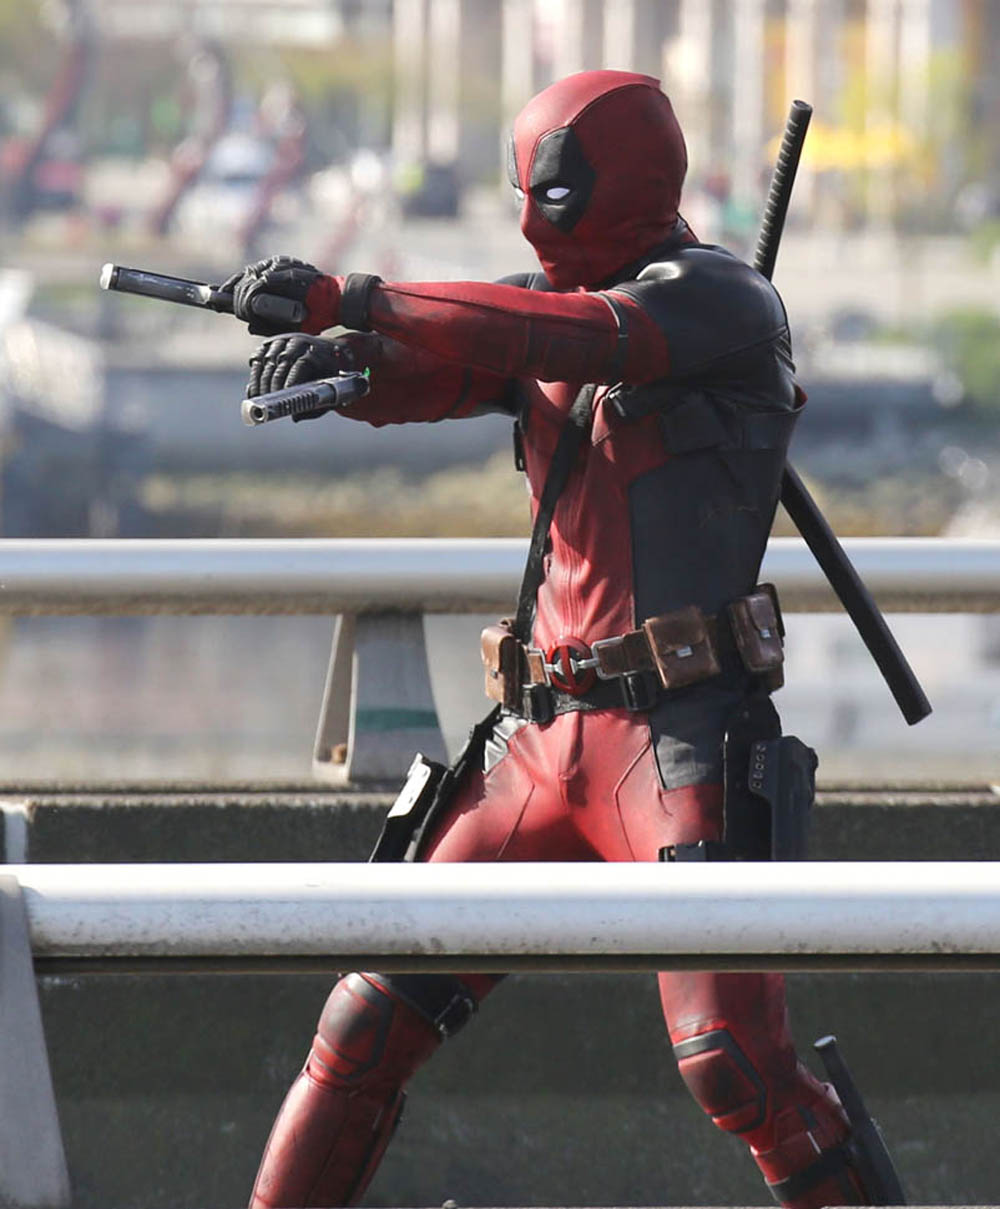 """51703768 Actor Ryan Reynolds suits up to film and action scene on a viaduct for """"Deadpool"""" on April 7, 2015 in Vancouver, Canada. The new Marvel movie tells the story of a former Special Forces operative turned mercenary who is subjected to a rogue experiment that leaves him with accelerated healing powers. FameFlynet, Inc - Beverly Hills, CA, USA - +1 (818) 307-4813"""